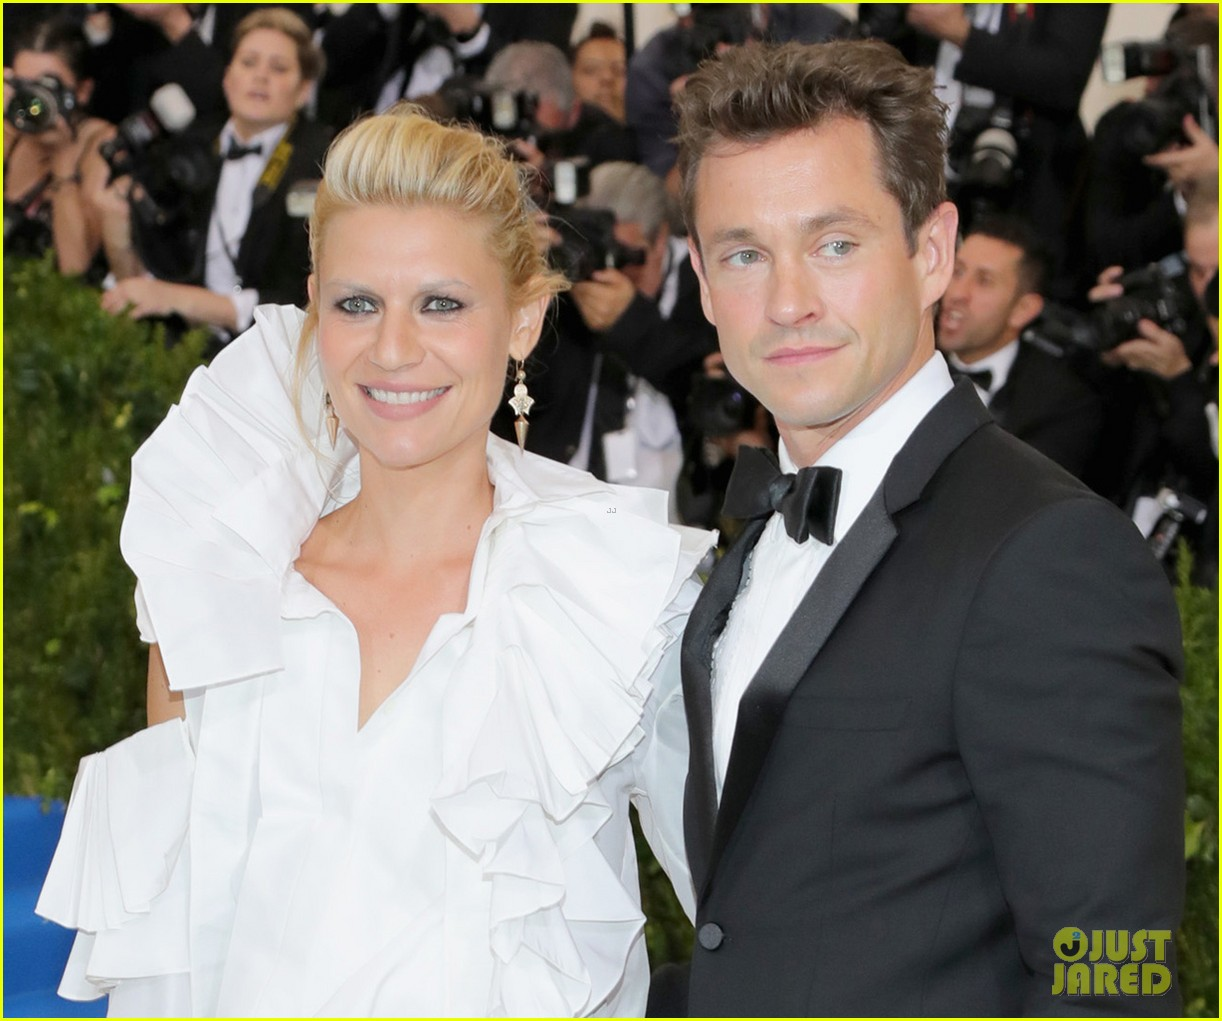 Claire Danes & Hugh Dancy Match In Black & White At Met